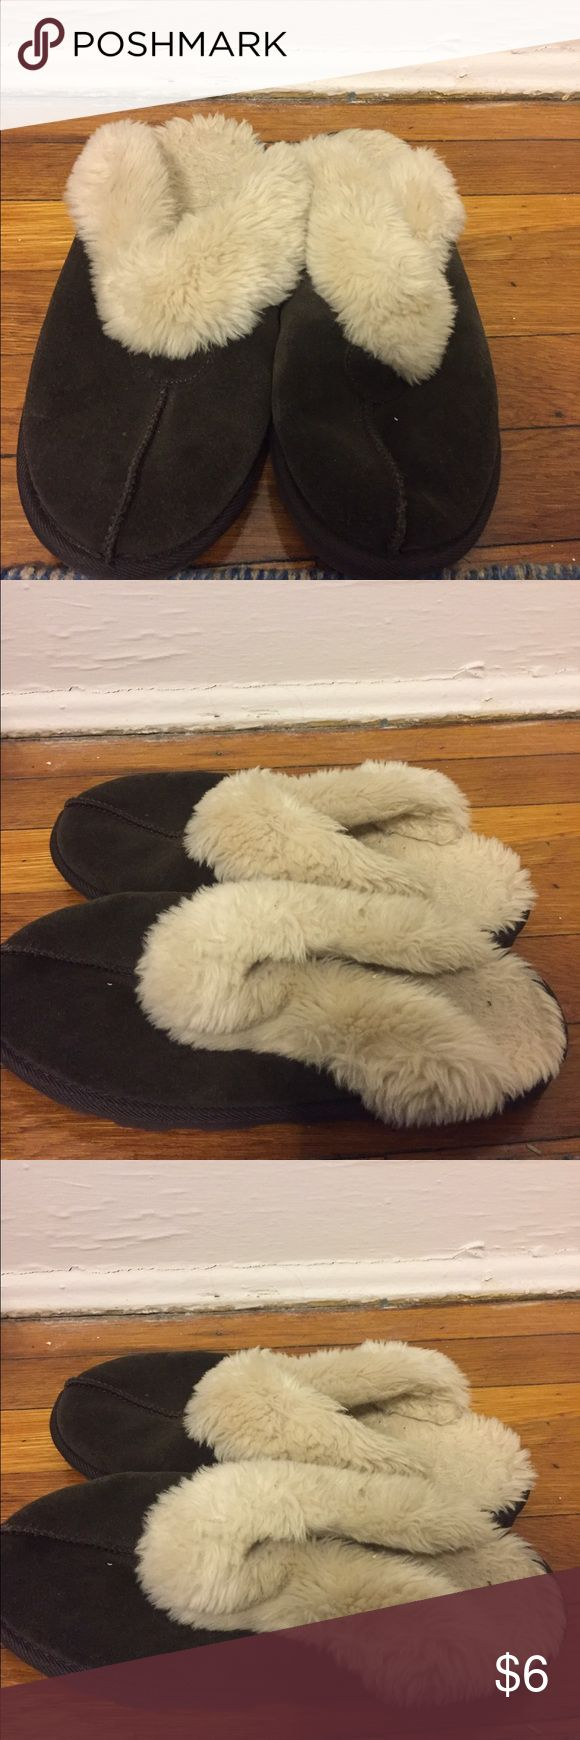 Dark brown slippers Dark brown slippers. A bit matted down inside but no stains. Trades and offers welcome! Shoes Slippers